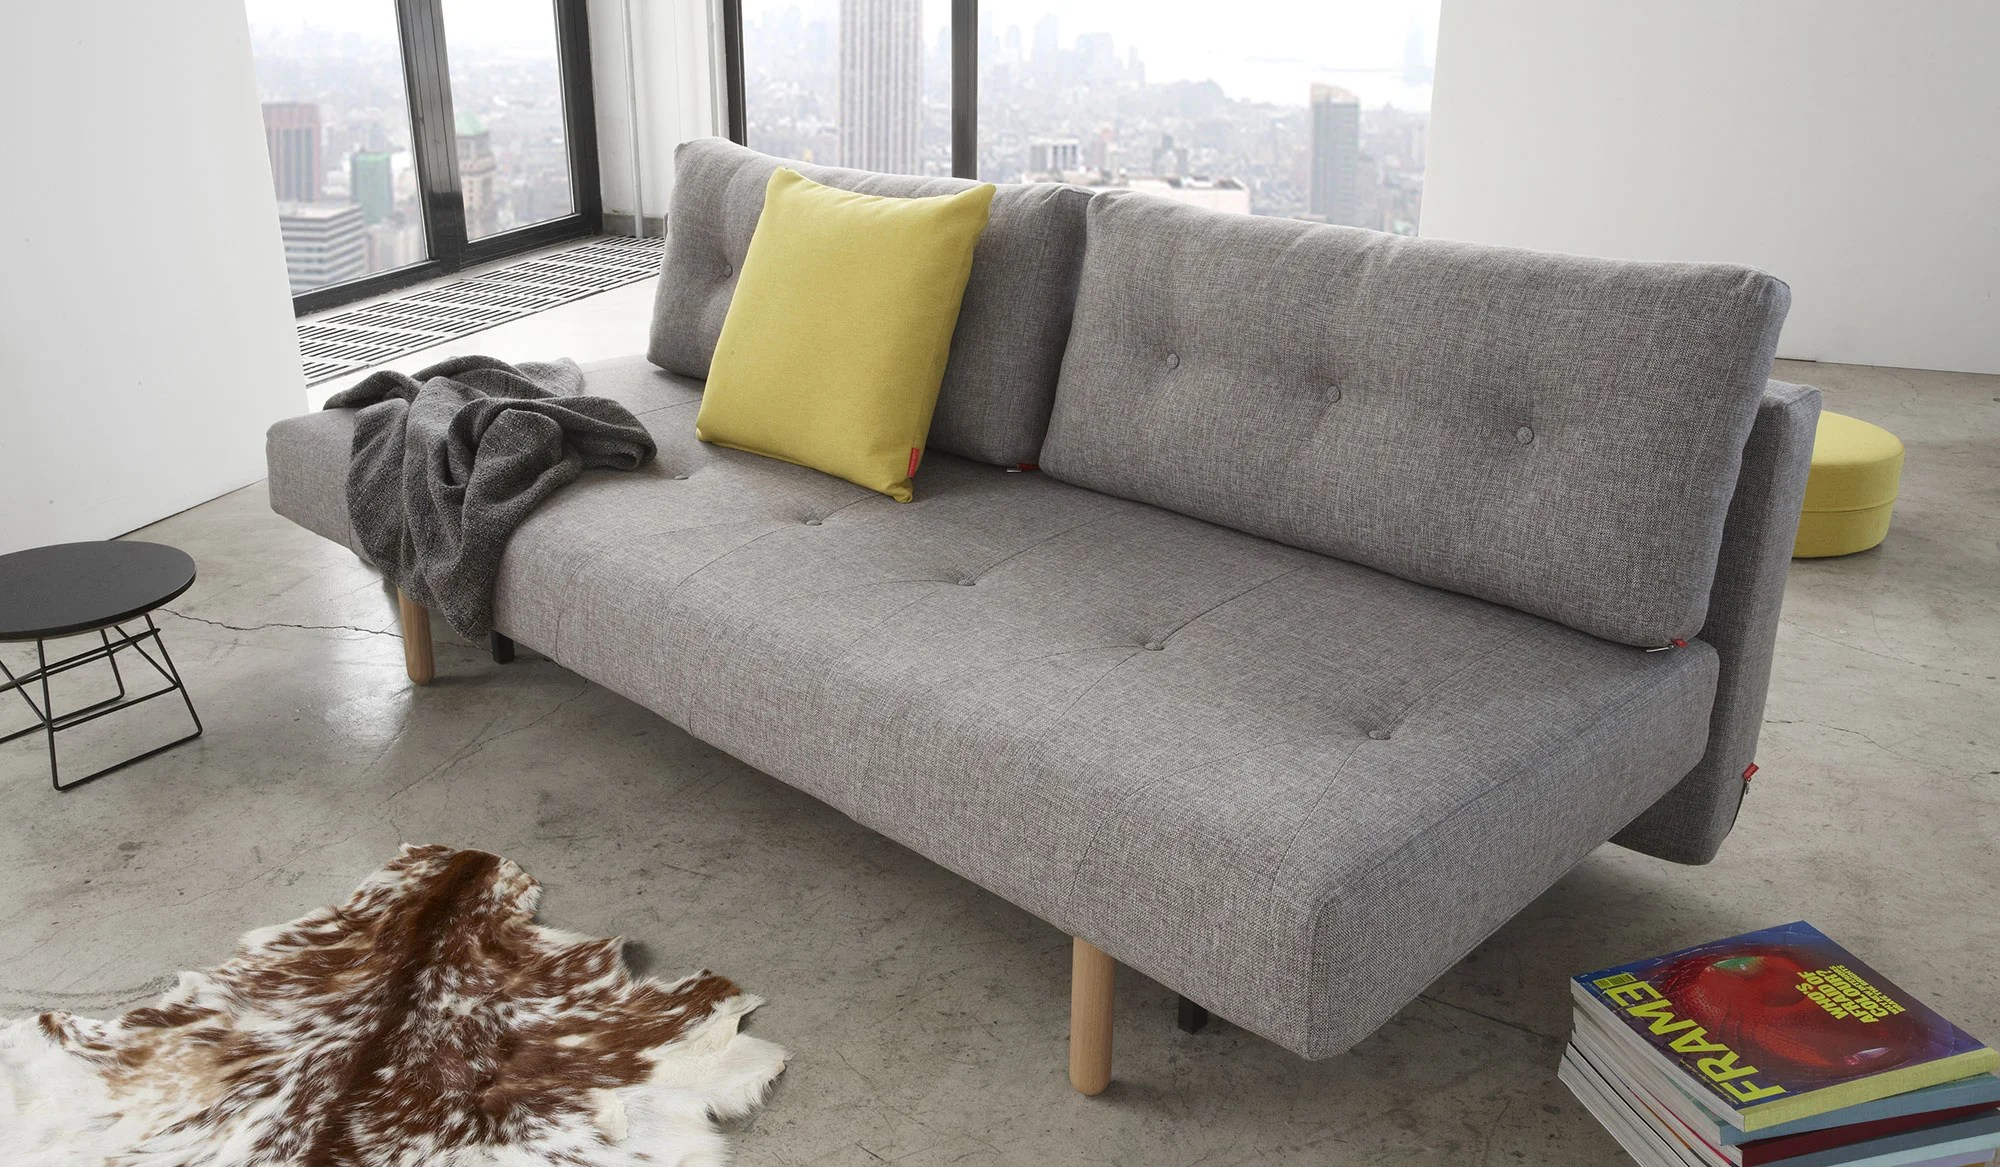 Per Weiss Sofa Bed Uk 10 Off Chic Scandi Style Sofa London Evening Standard